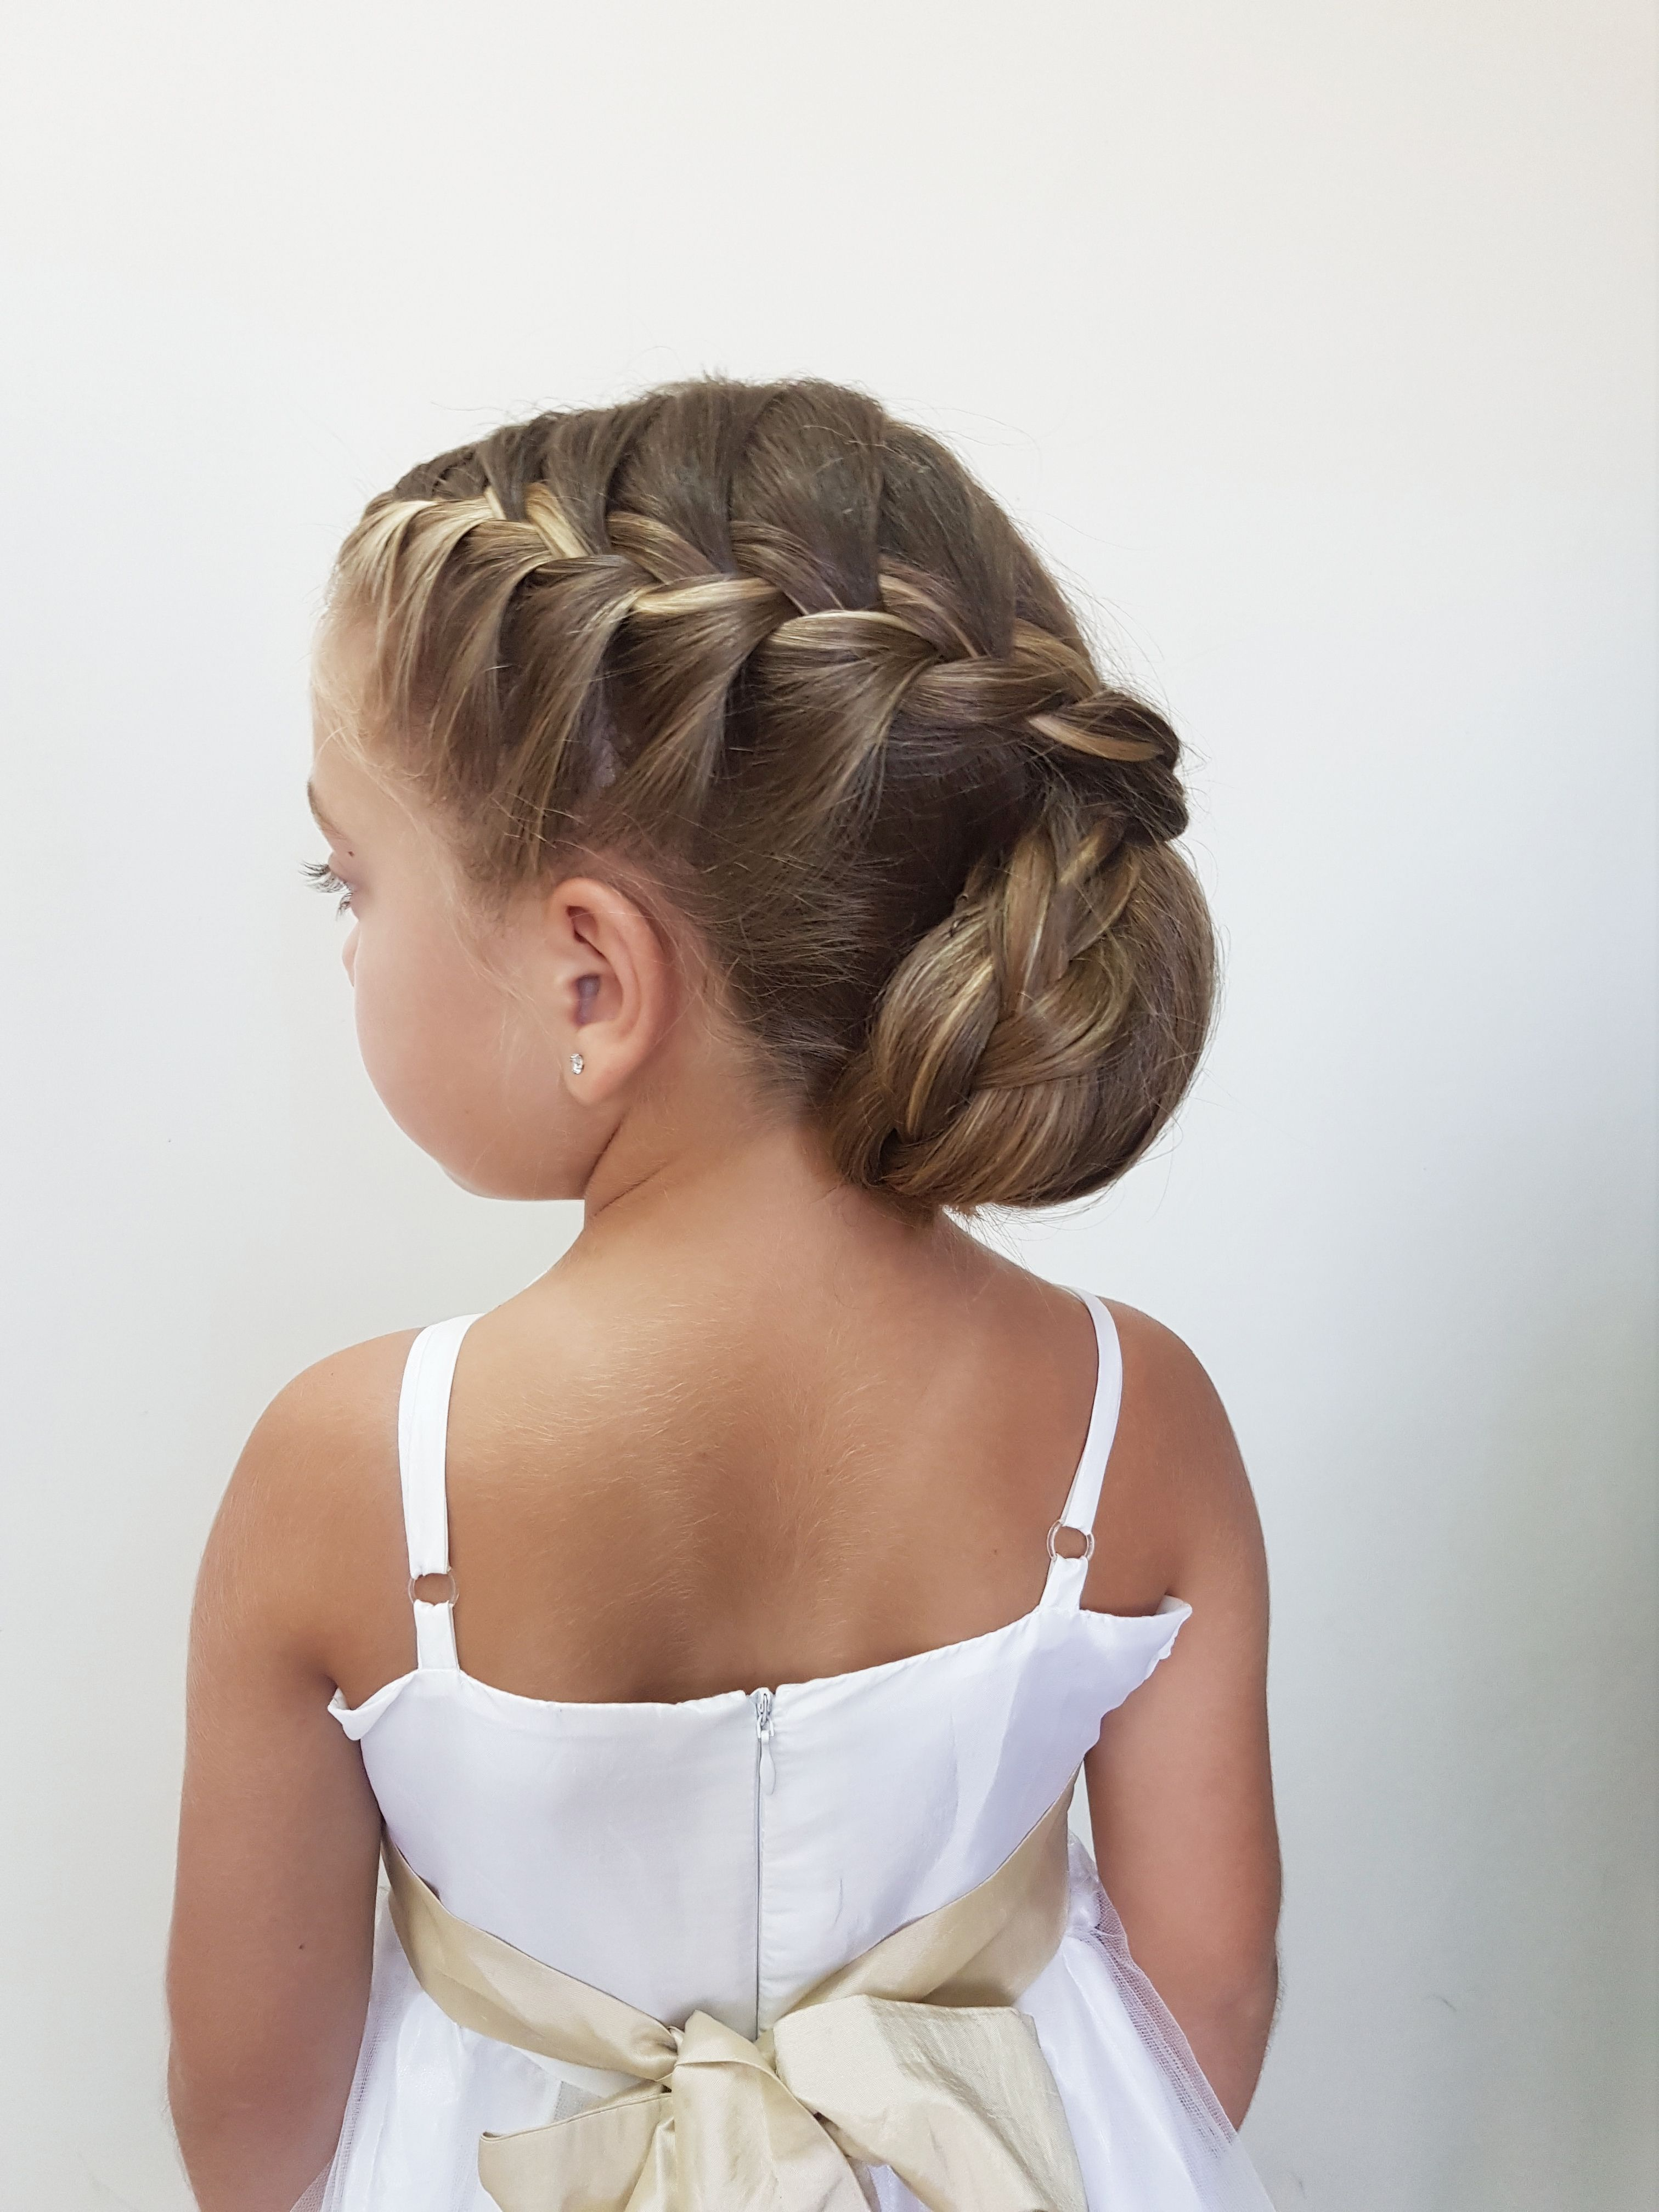 pin by emily rector on aubreys hairstyles in 2019 | flower